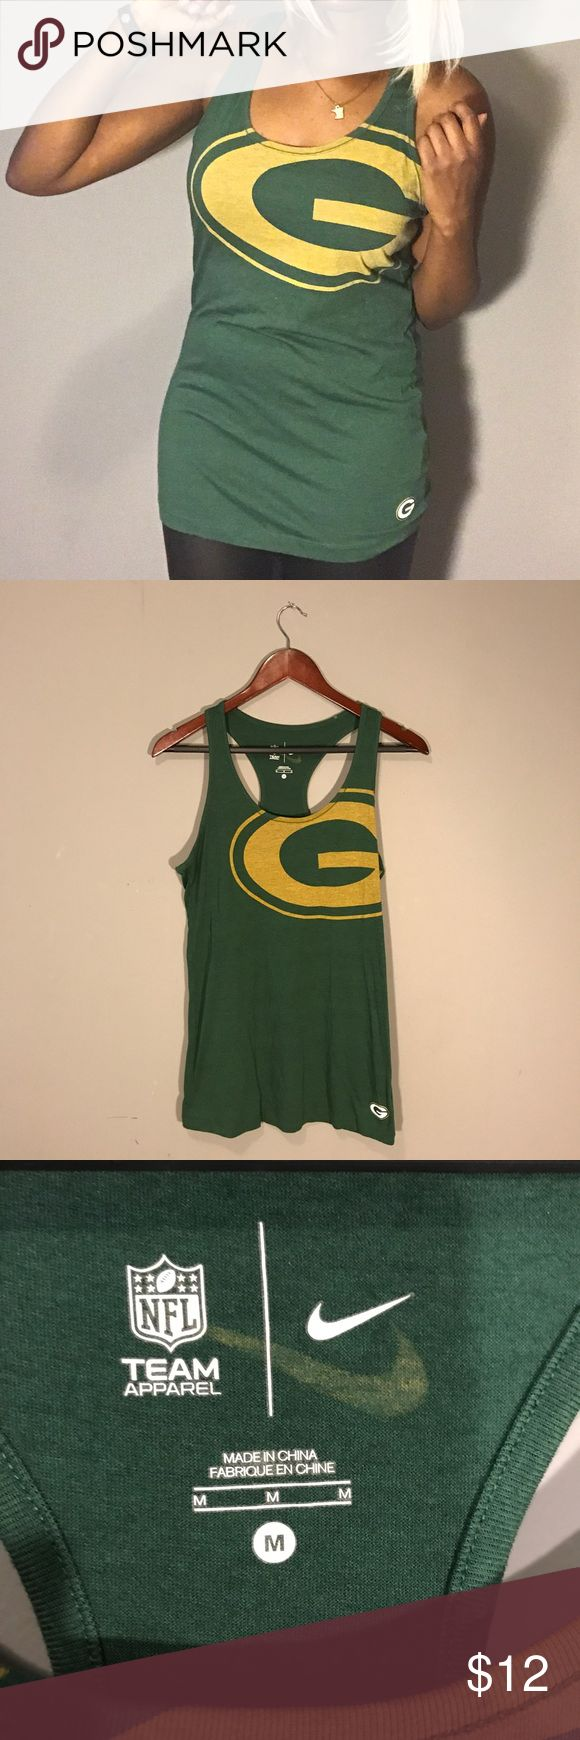 NFL Apparel | Green Bay Packers Racerback Tank Cheese heads unite! Green Bay Packers racerback tank top. Longer length. Small imperfection on interior neckline (cannot be seen when worn). Size Medium. Smoke free, pet free home! Tops Tank Tops